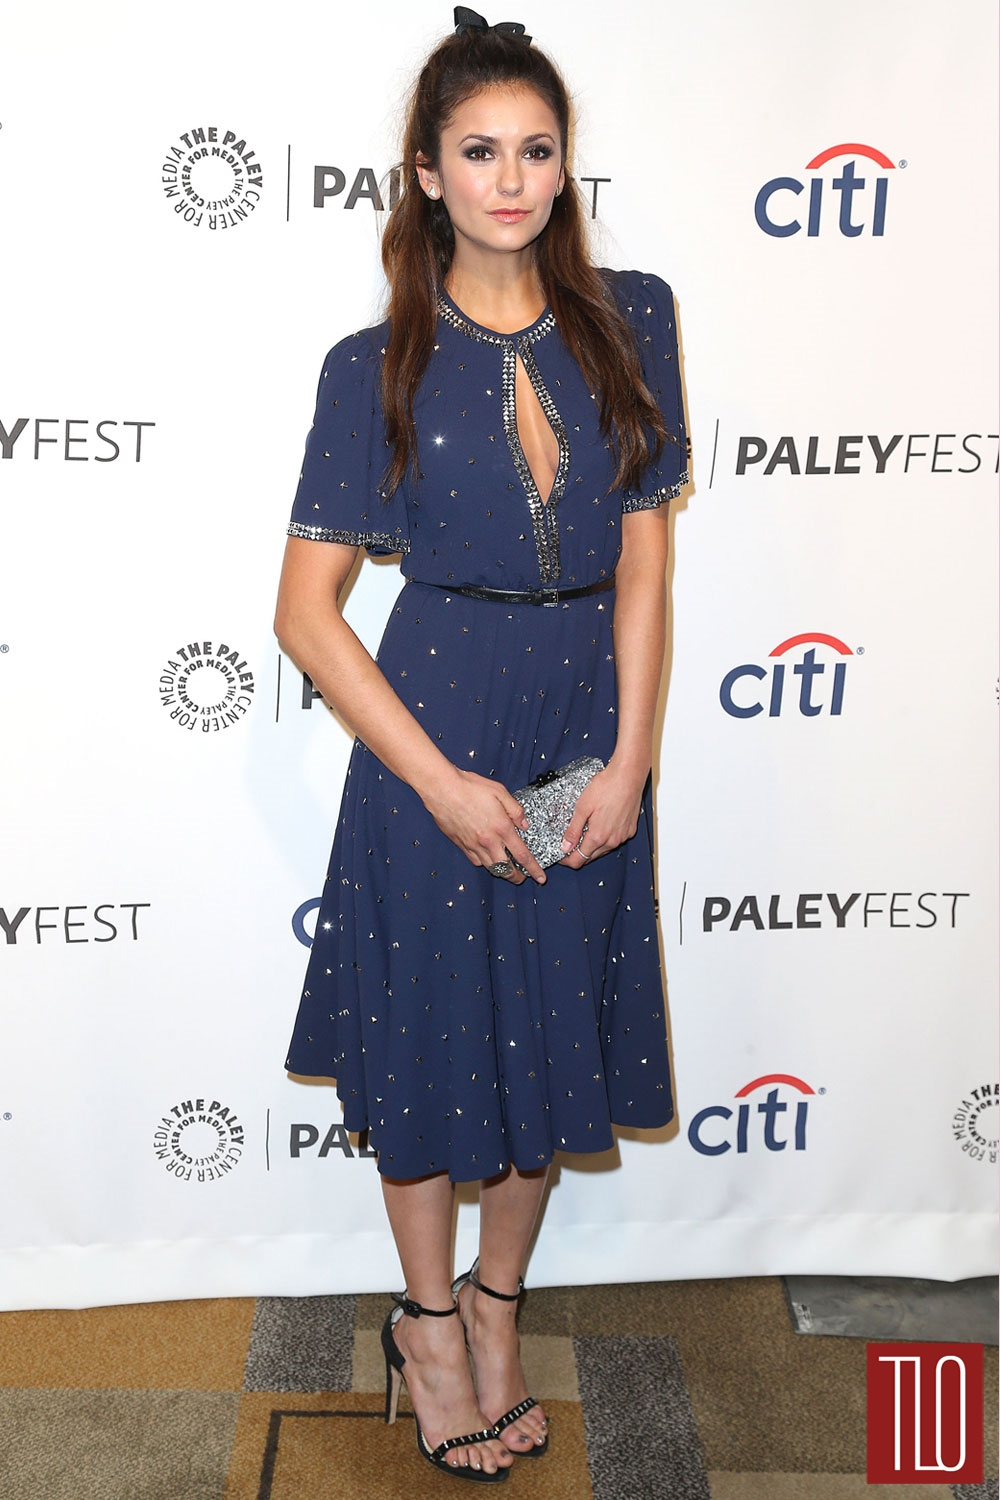 Nina-Dobrev-PaleyFest-2014-TheOriginals-Panel-Tom-Lorenzo-Site-TLO (1)